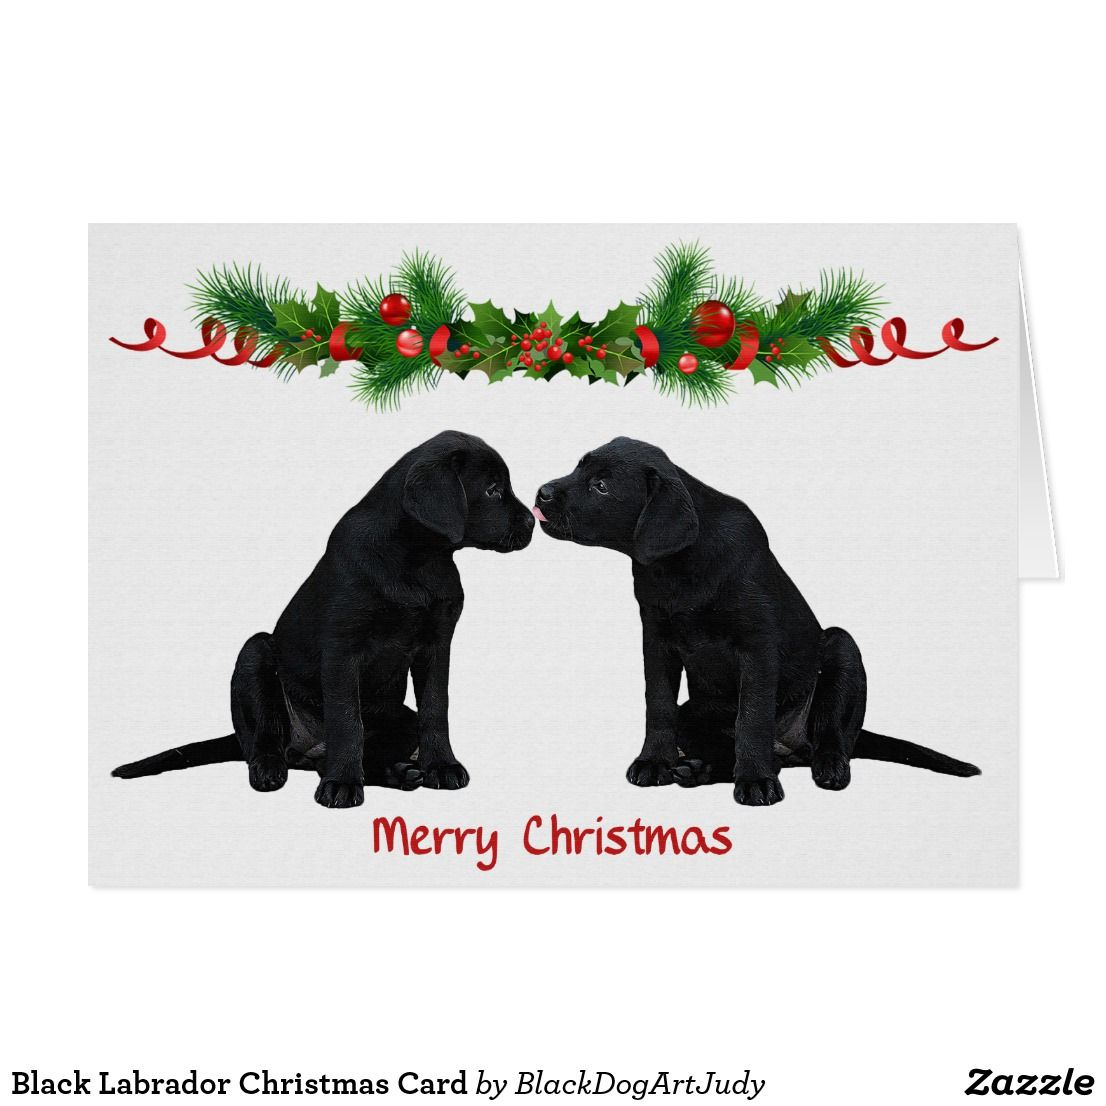 Black Labrador Christmas Card | Black labrador